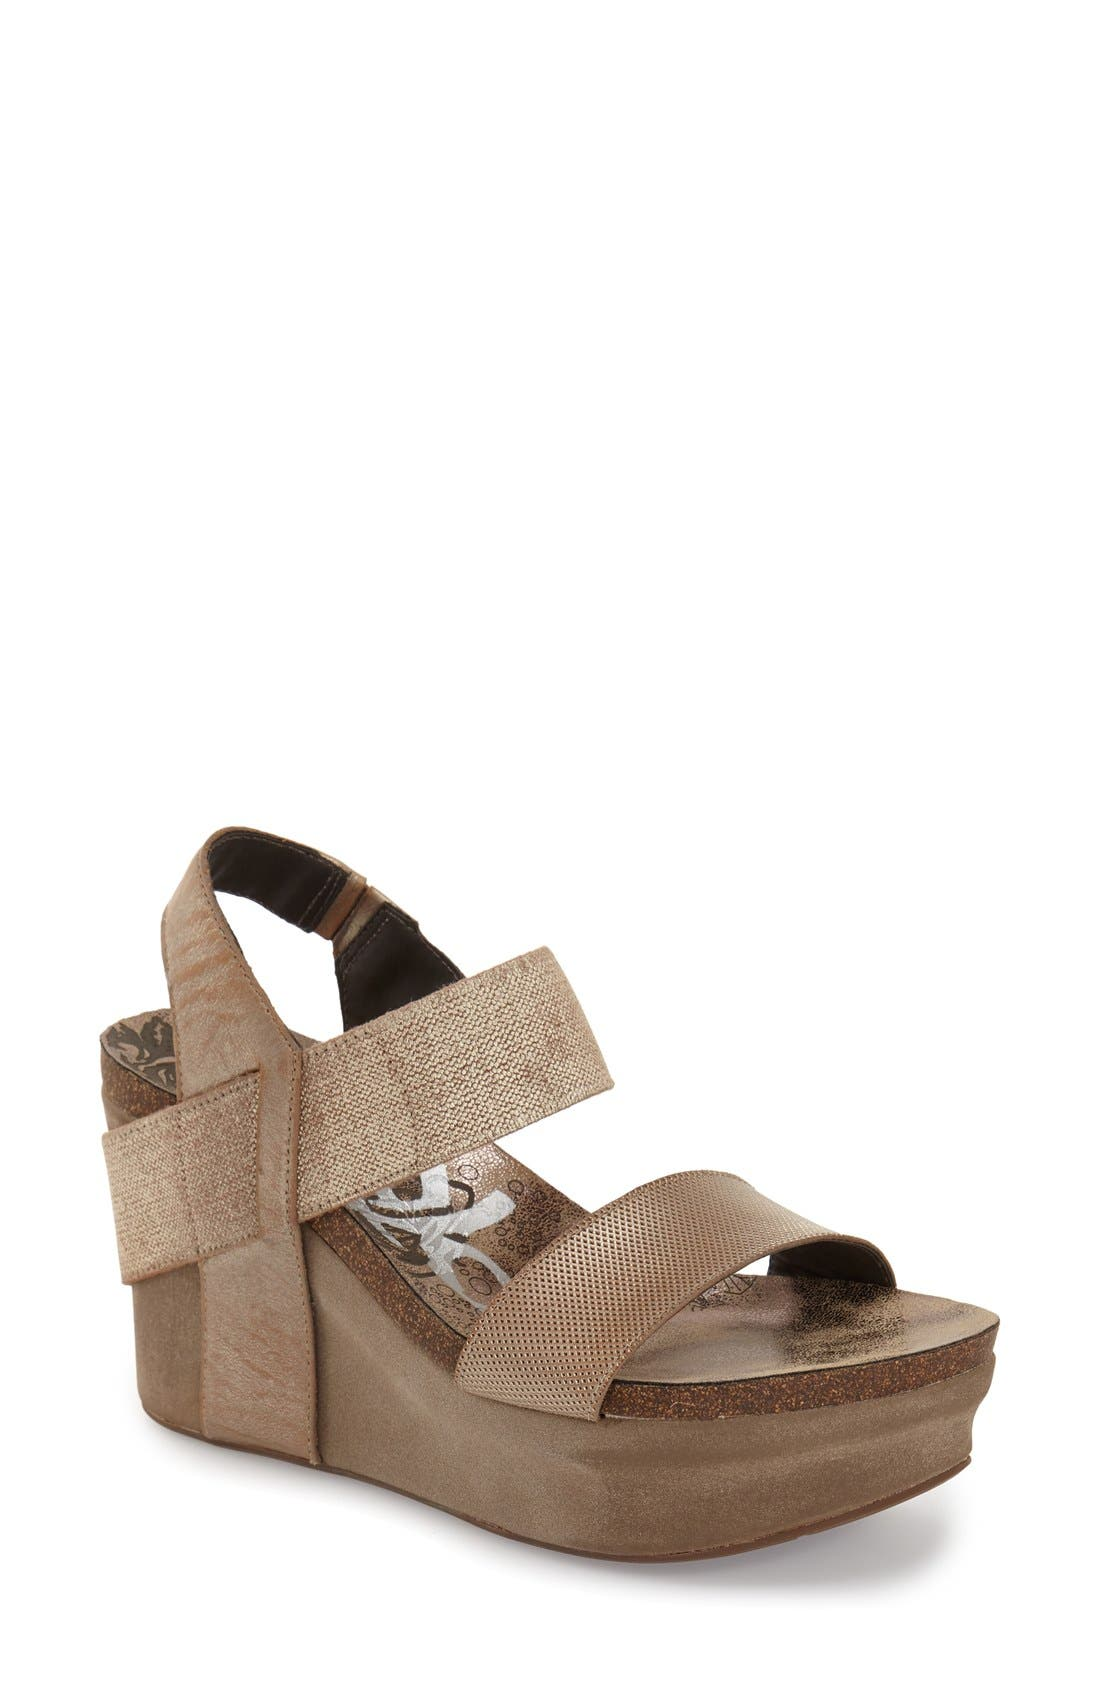 'Bushnell' Wedge Sandal,                             Main thumbnail 2, color,